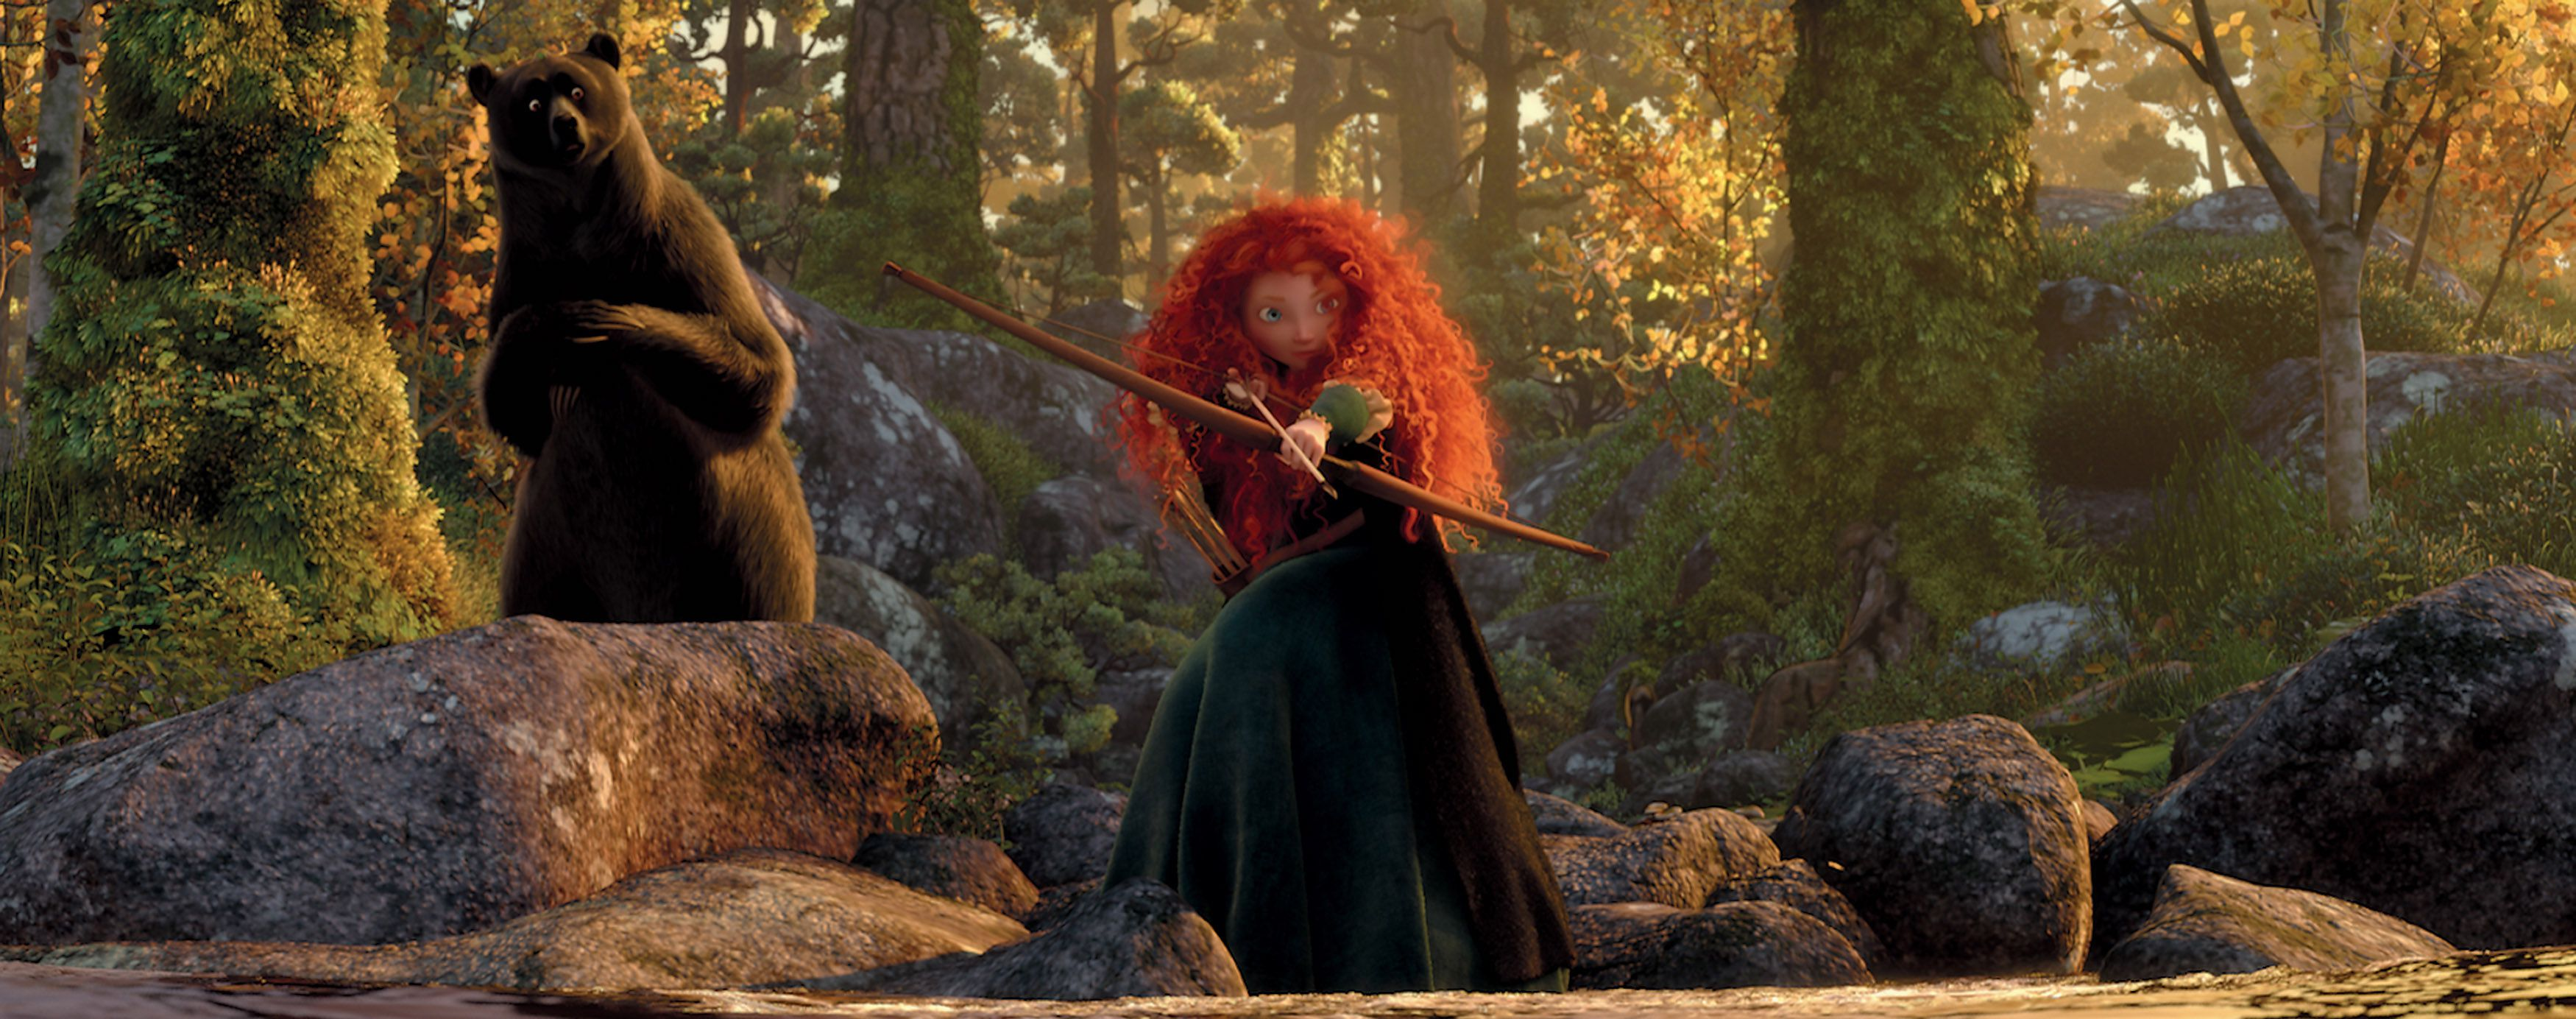 An image from Brave